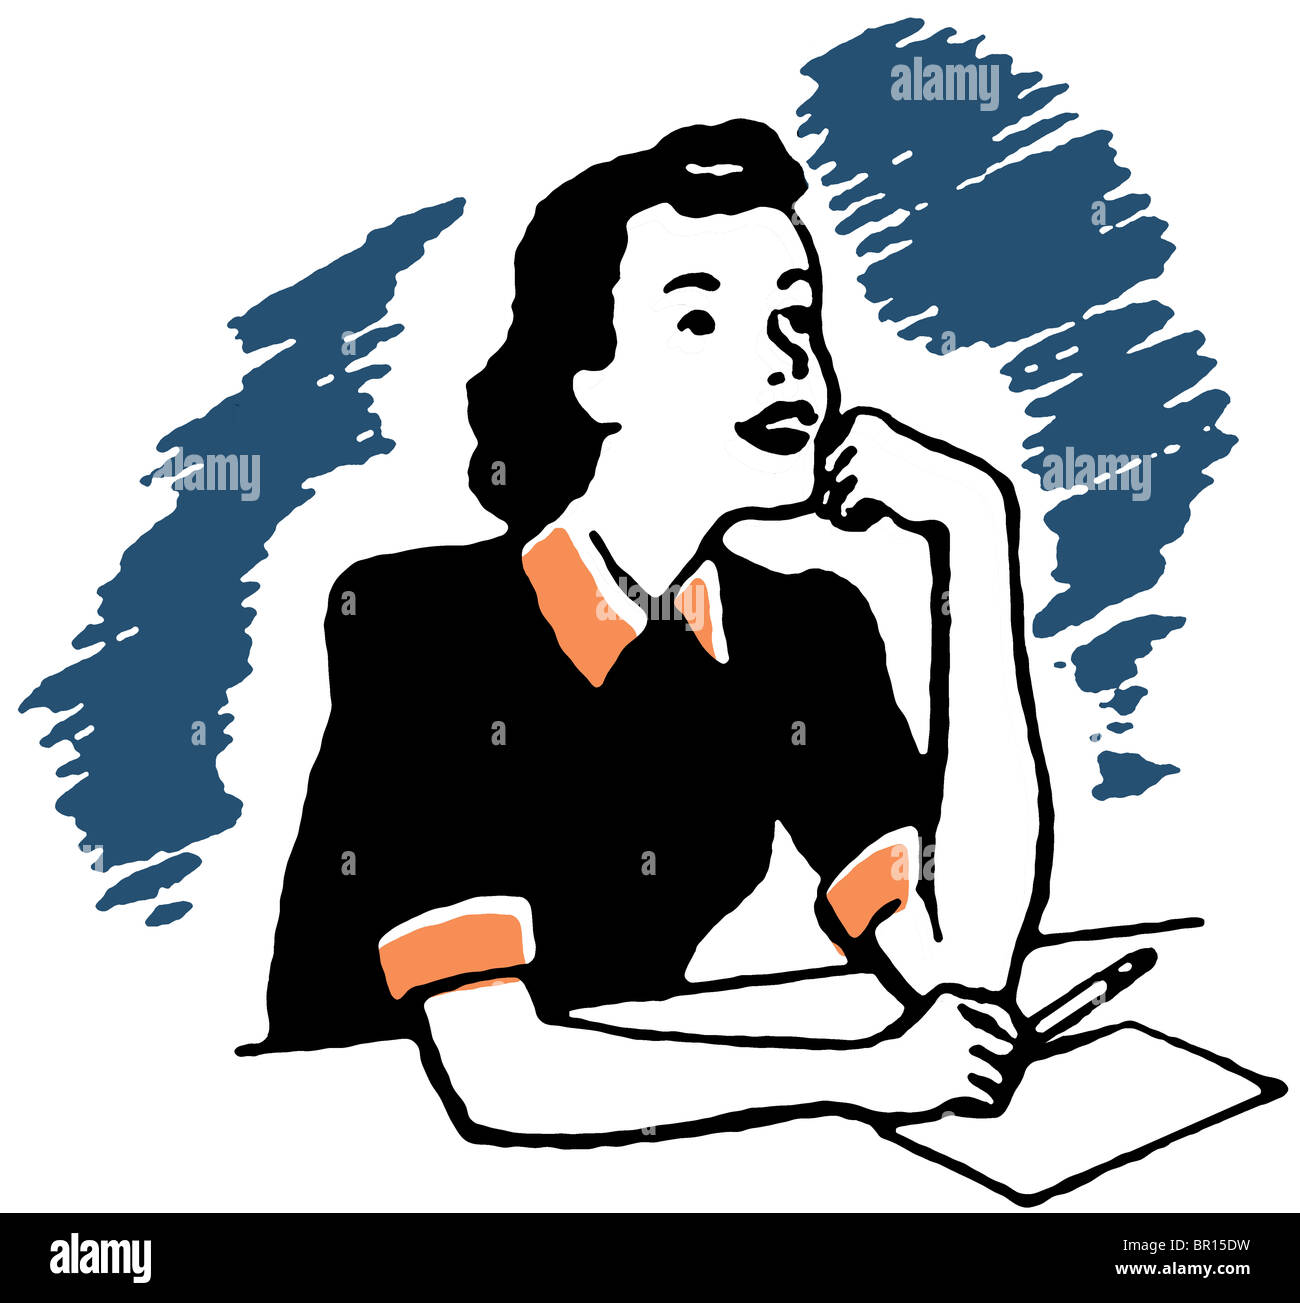 A vintage portrait illustration - Stock Image